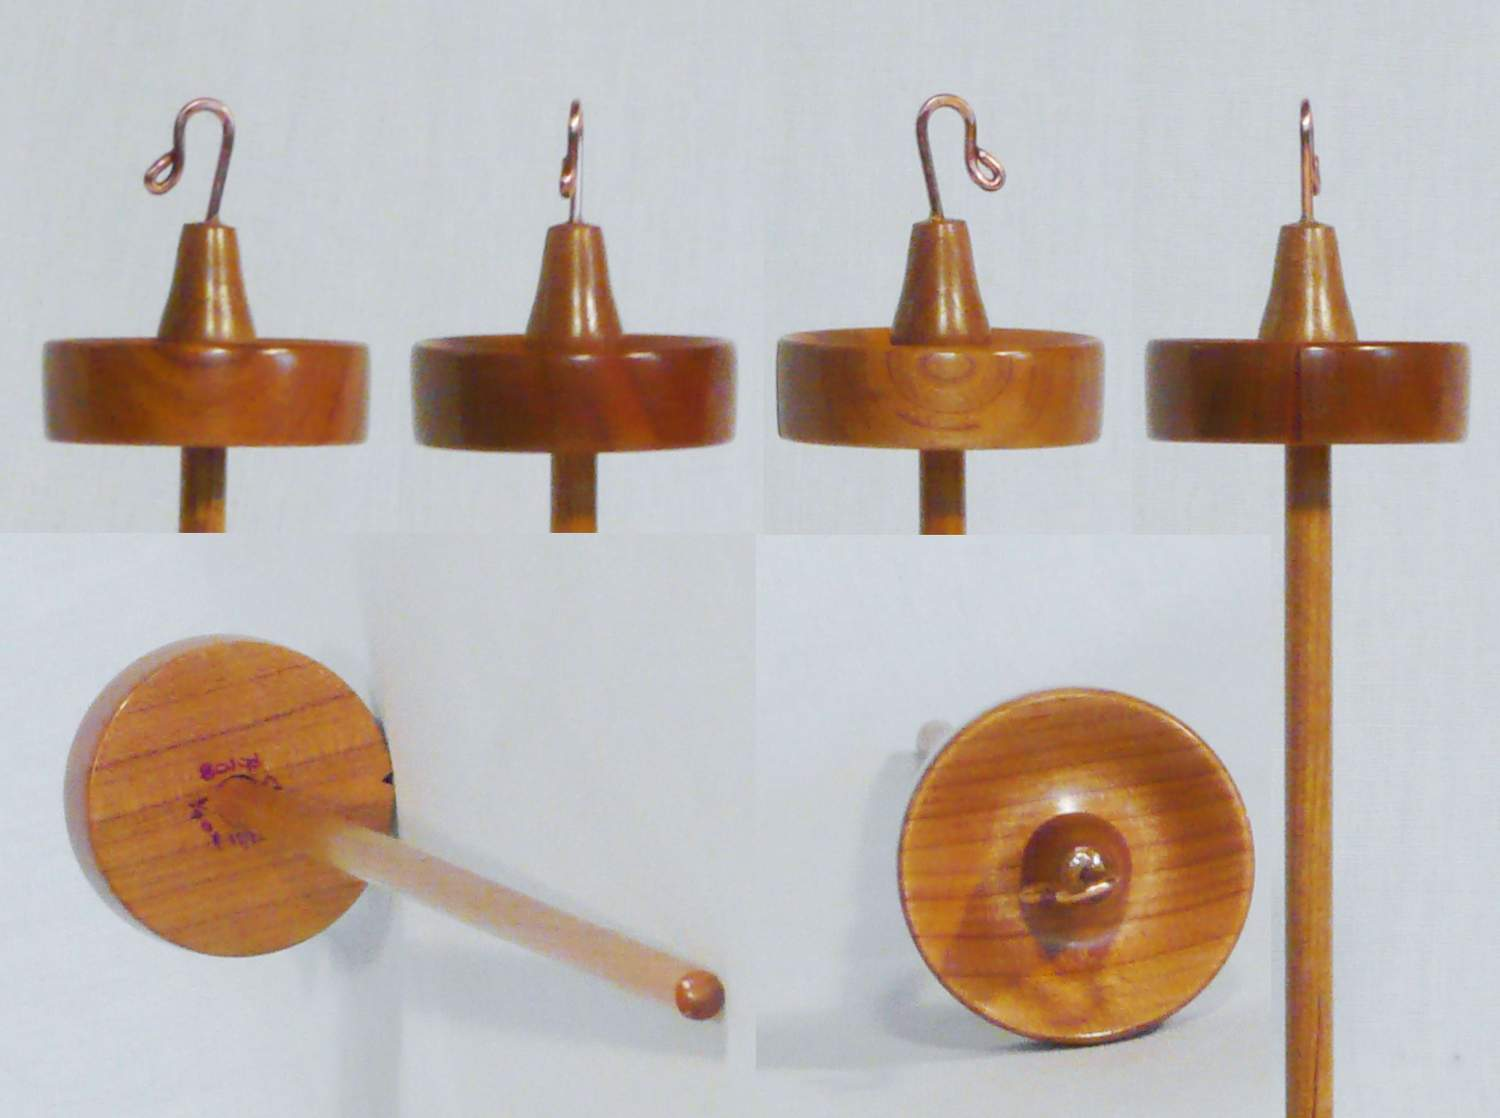 Hand turned high whorl notched drop spindle for spinning yarn by Cynthia D. Haney of Cherry wood.